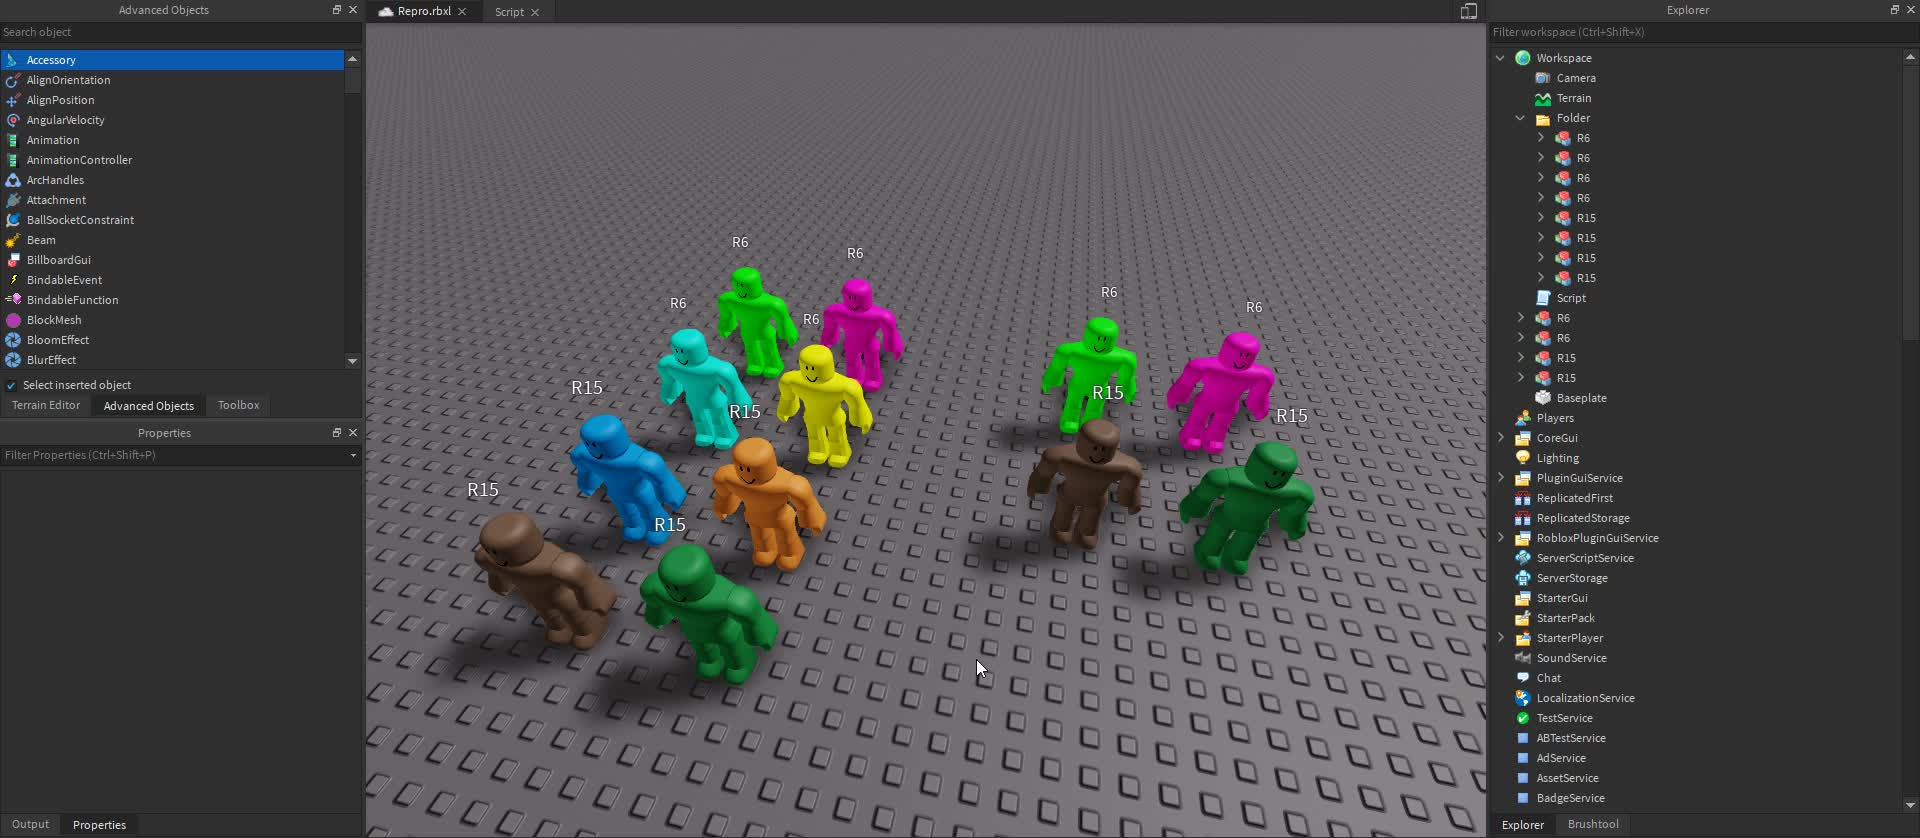 Coroutine Or Lerp Causing Texture And Color Swapping On Humanoids